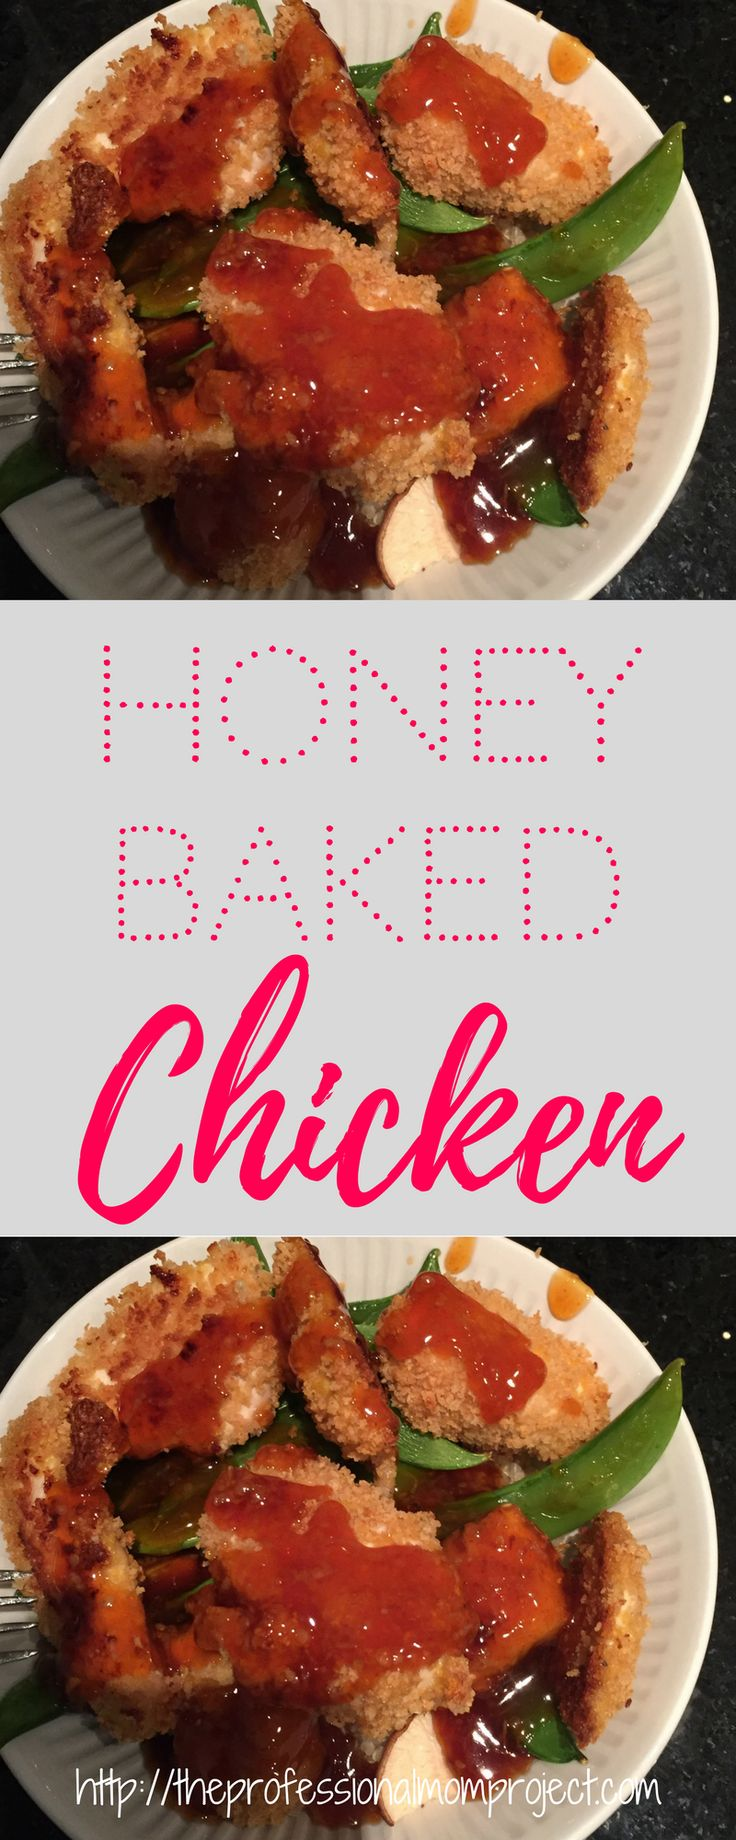 Easy honey baked chicken with roasted vegetables and quinoa - perfect for a quick weeknight dinner | healthy food | dinner idea | easy recipe | chicken recipe #dinner #chicken #healthymeal